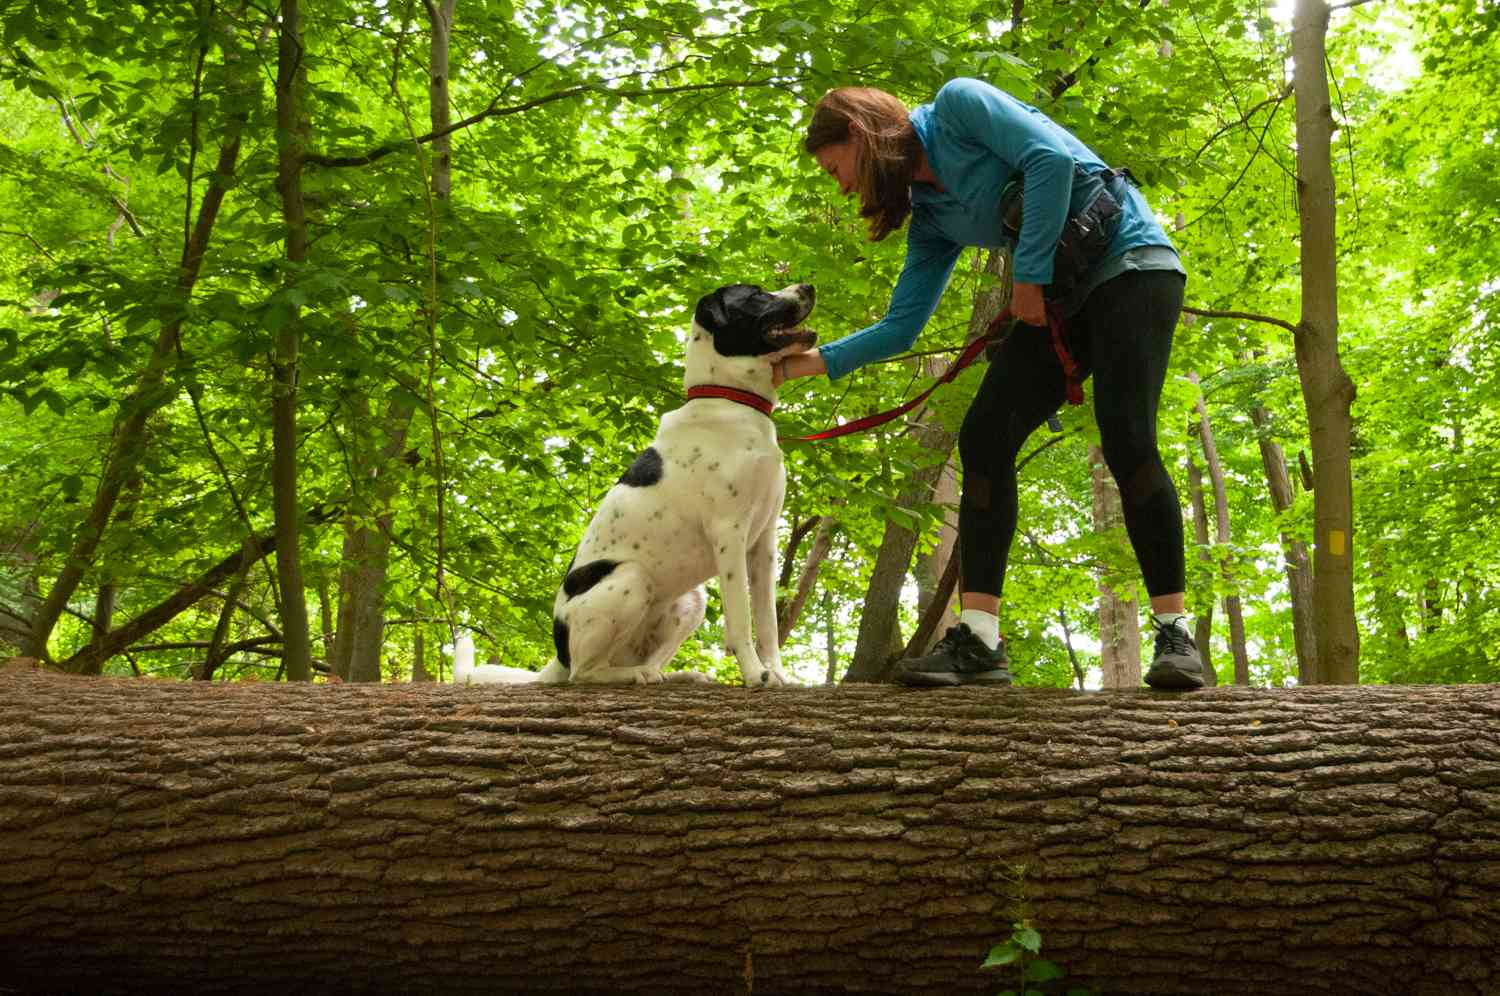 woman with black and white dog balance on large fallen tree in woods